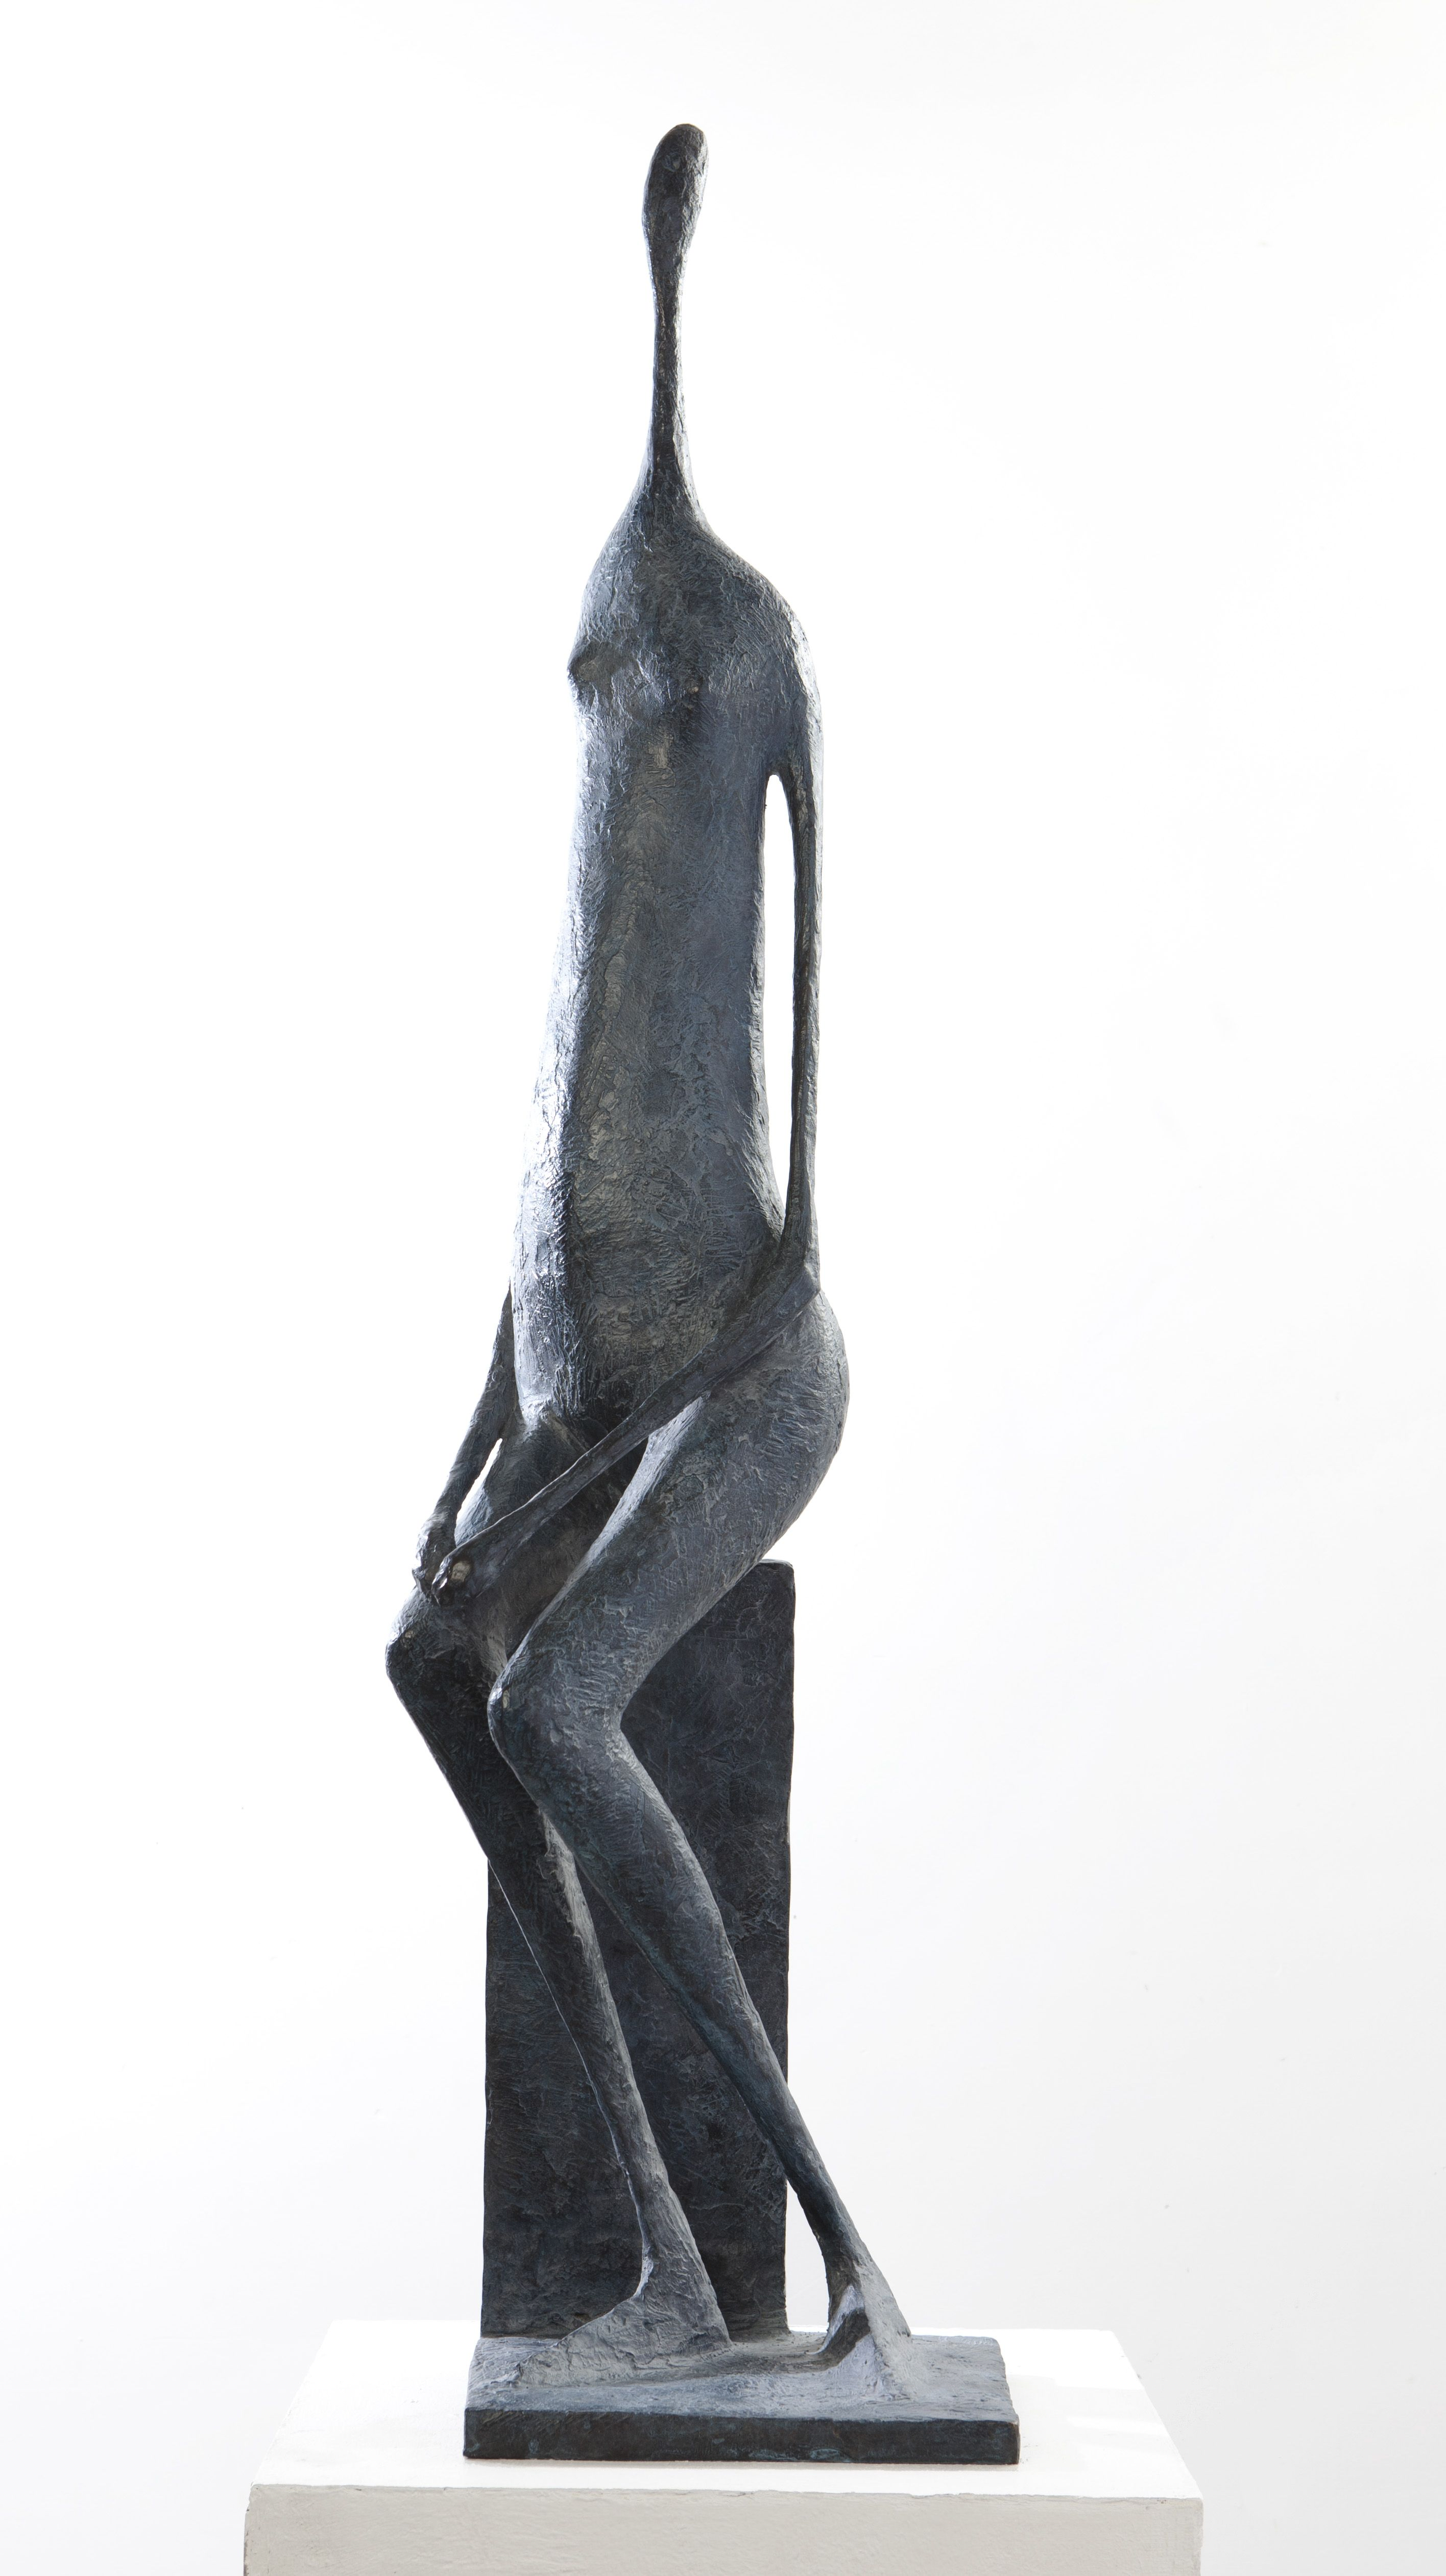 Grande Figure assise I,Pierre Yermia,Sculpture